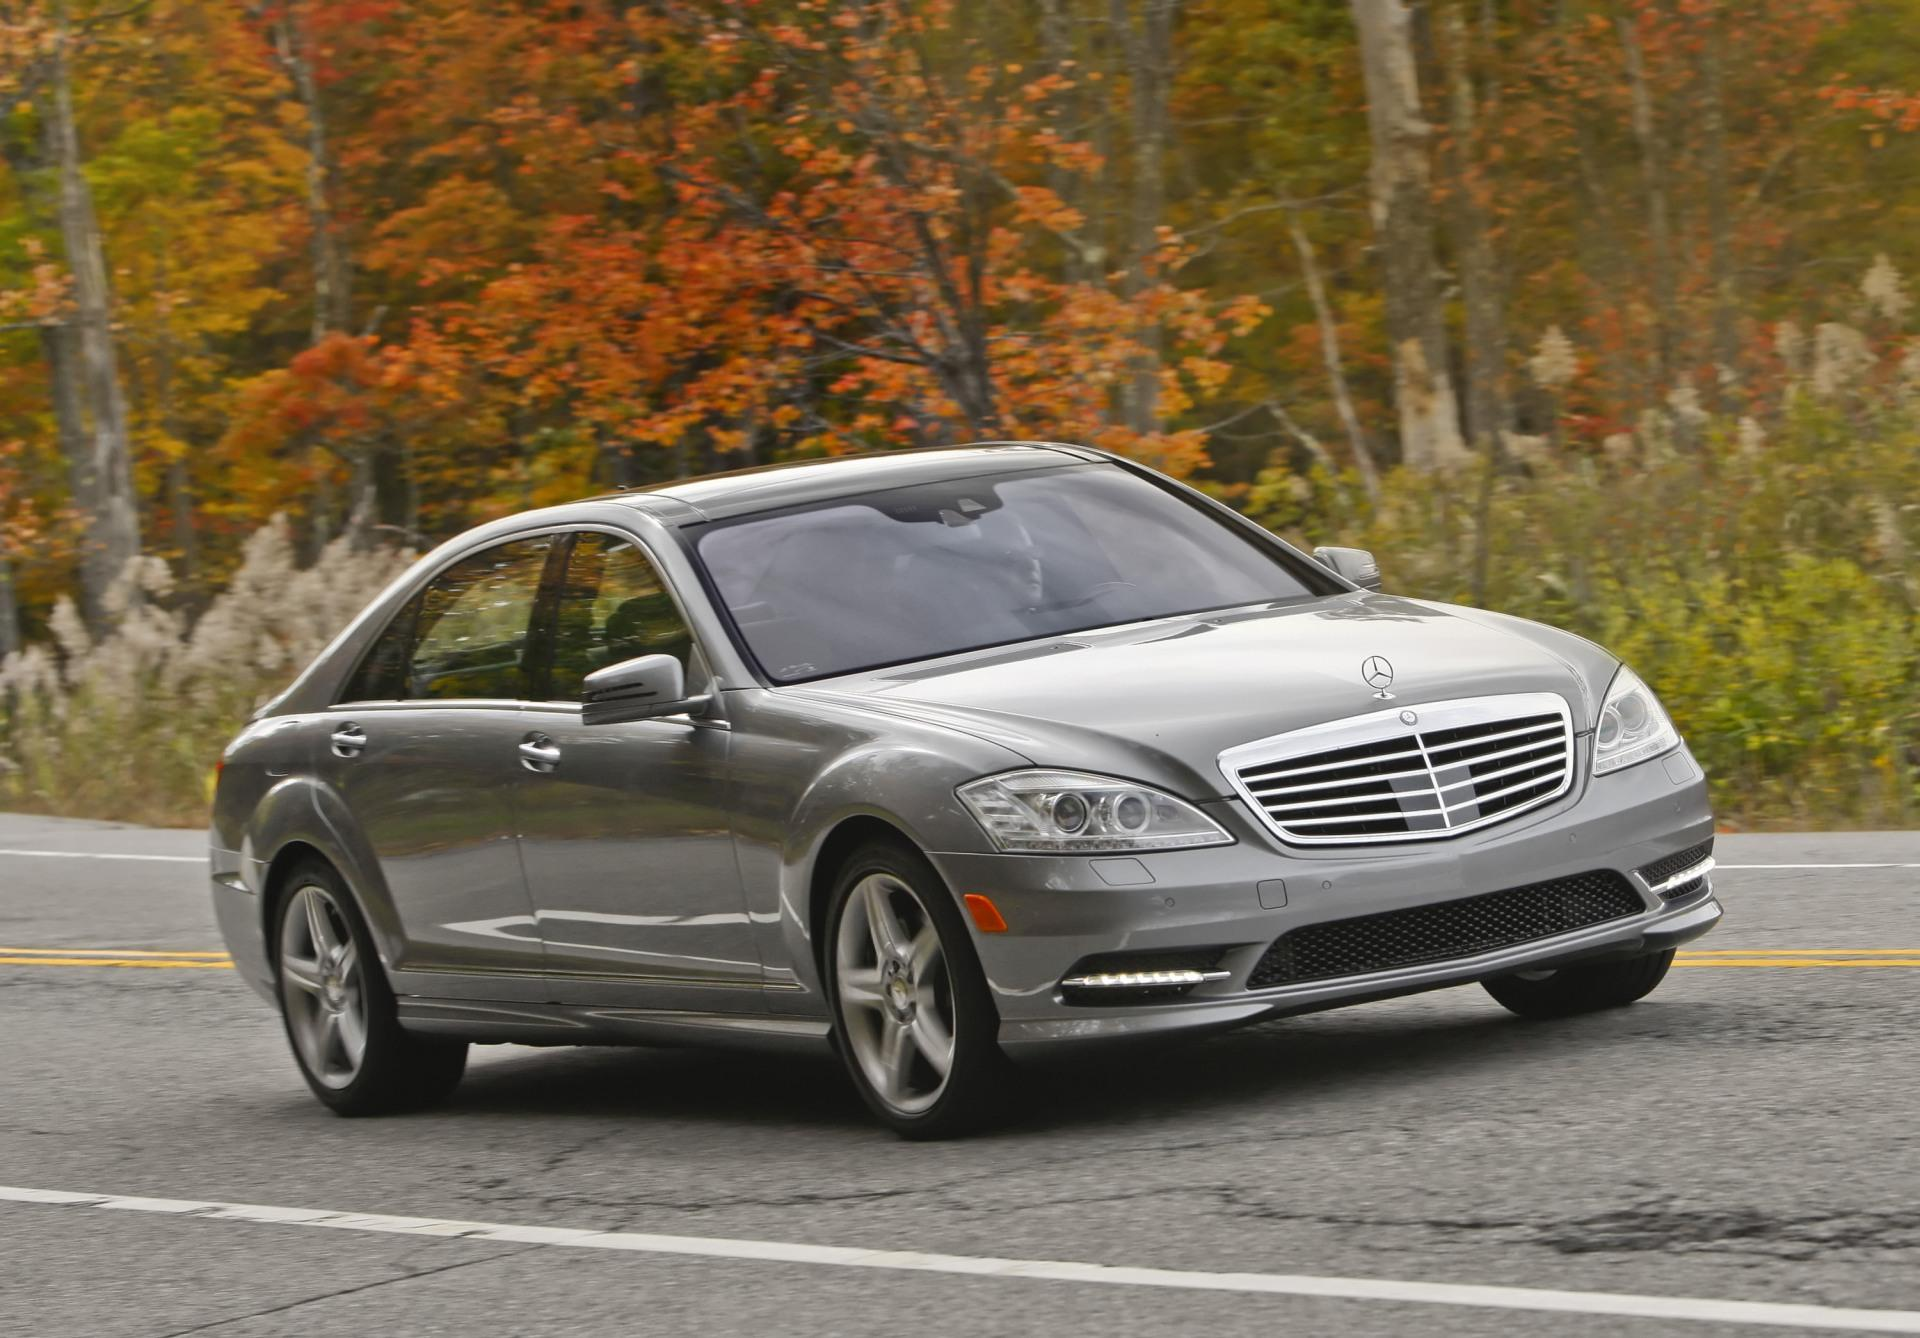 2010 mercedes benz s class image 12 for 2010 mercedes benz s500